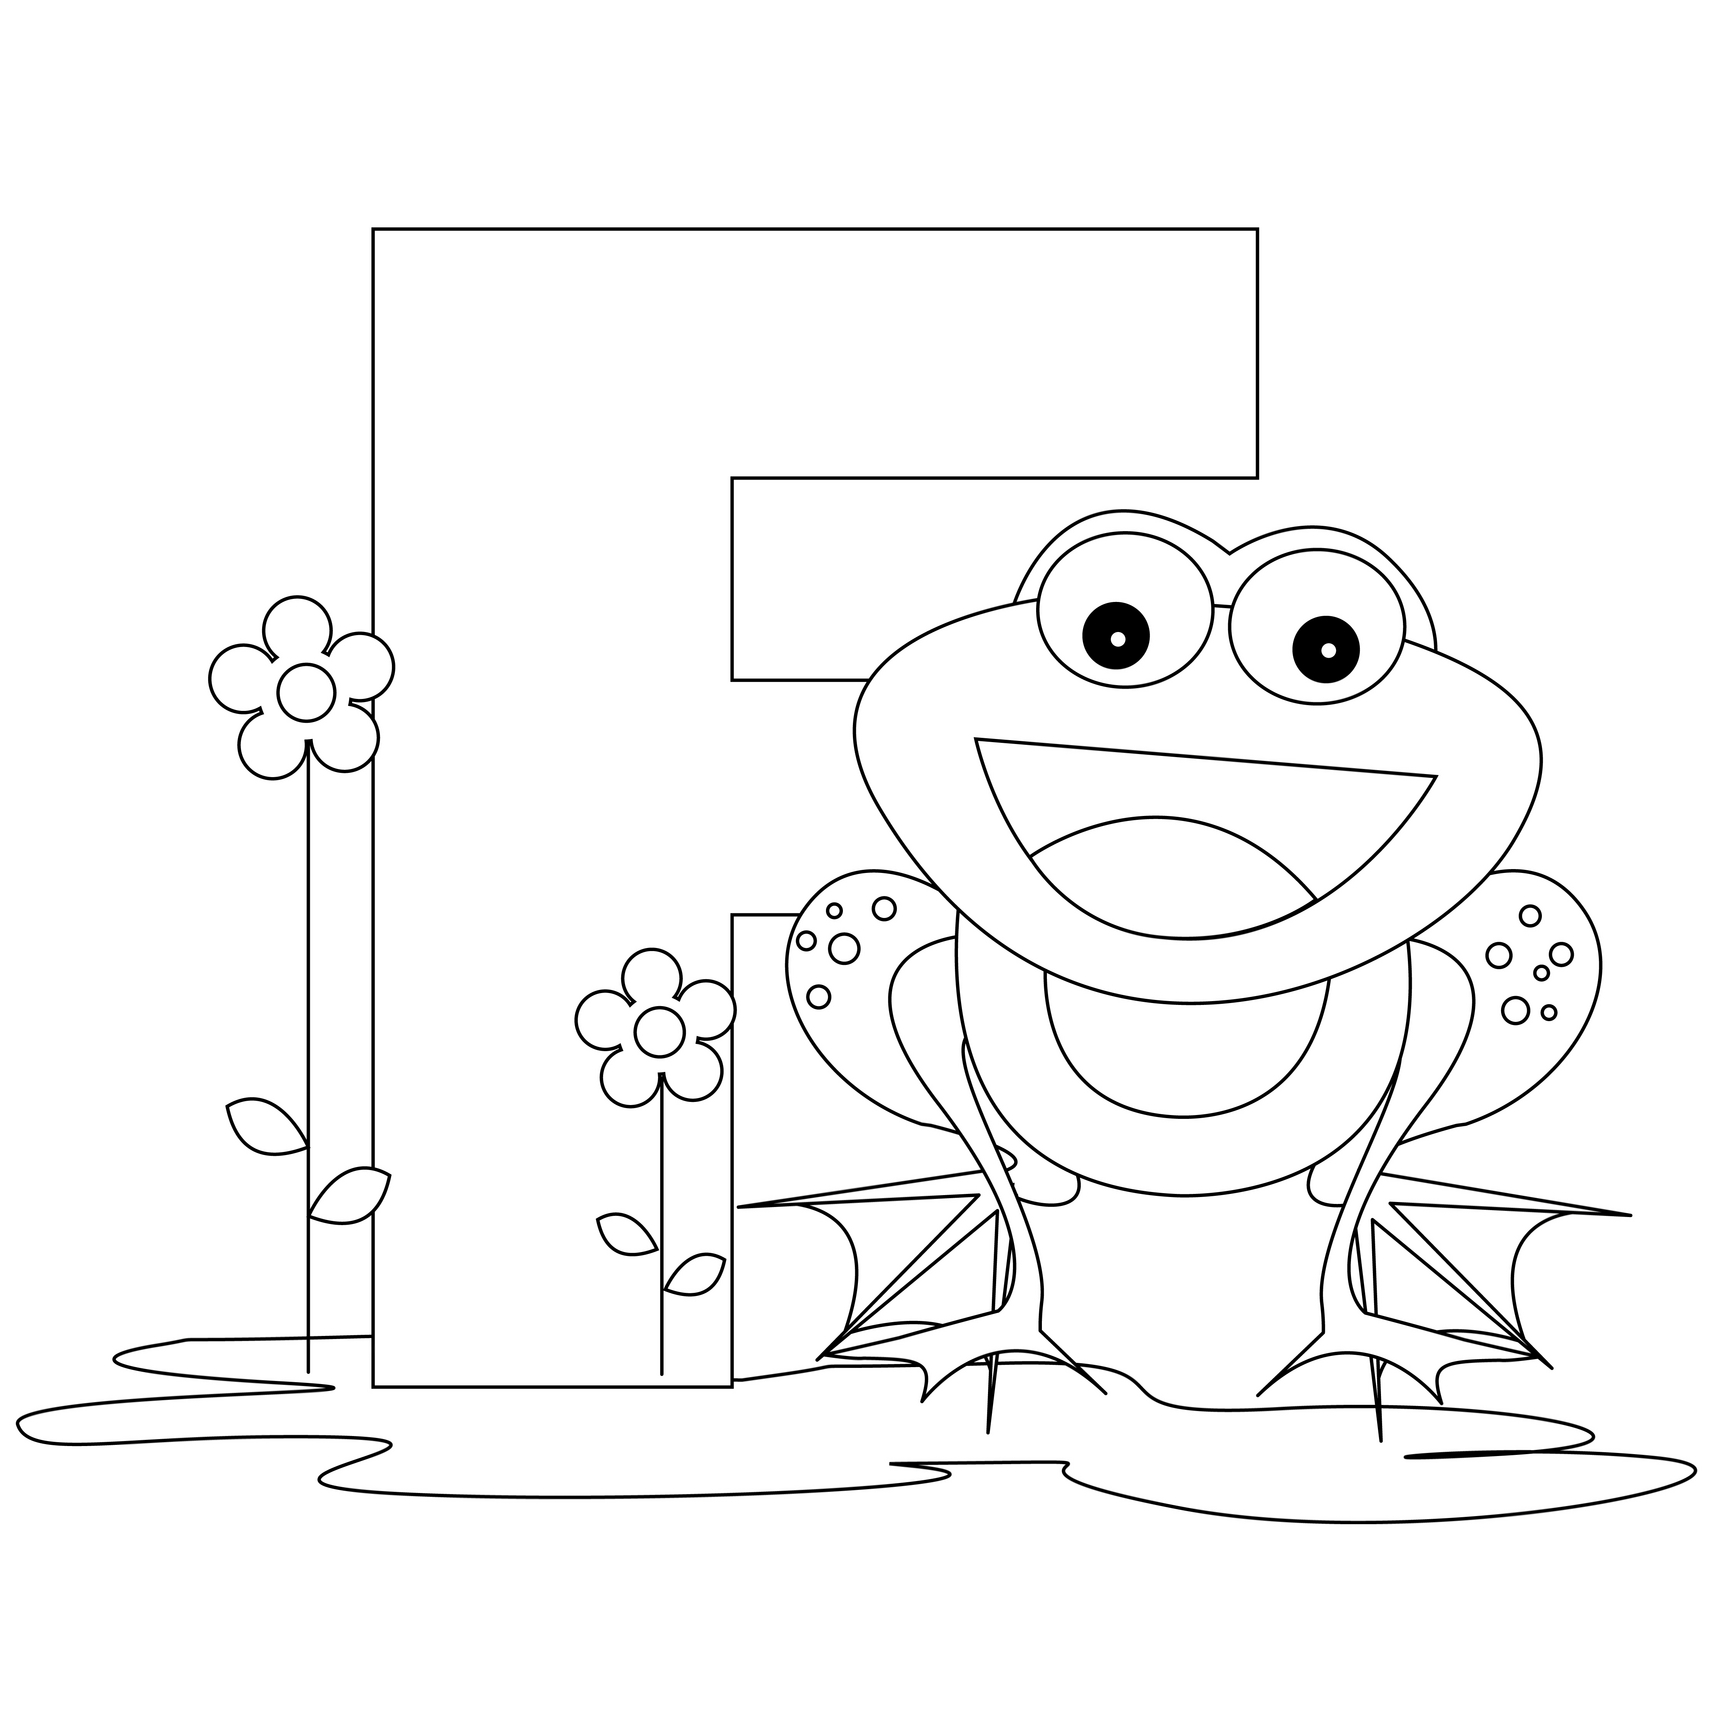 f coloring pages for preschoolers letter f is for flower coloring page free printable f for preschoolers coloring pages